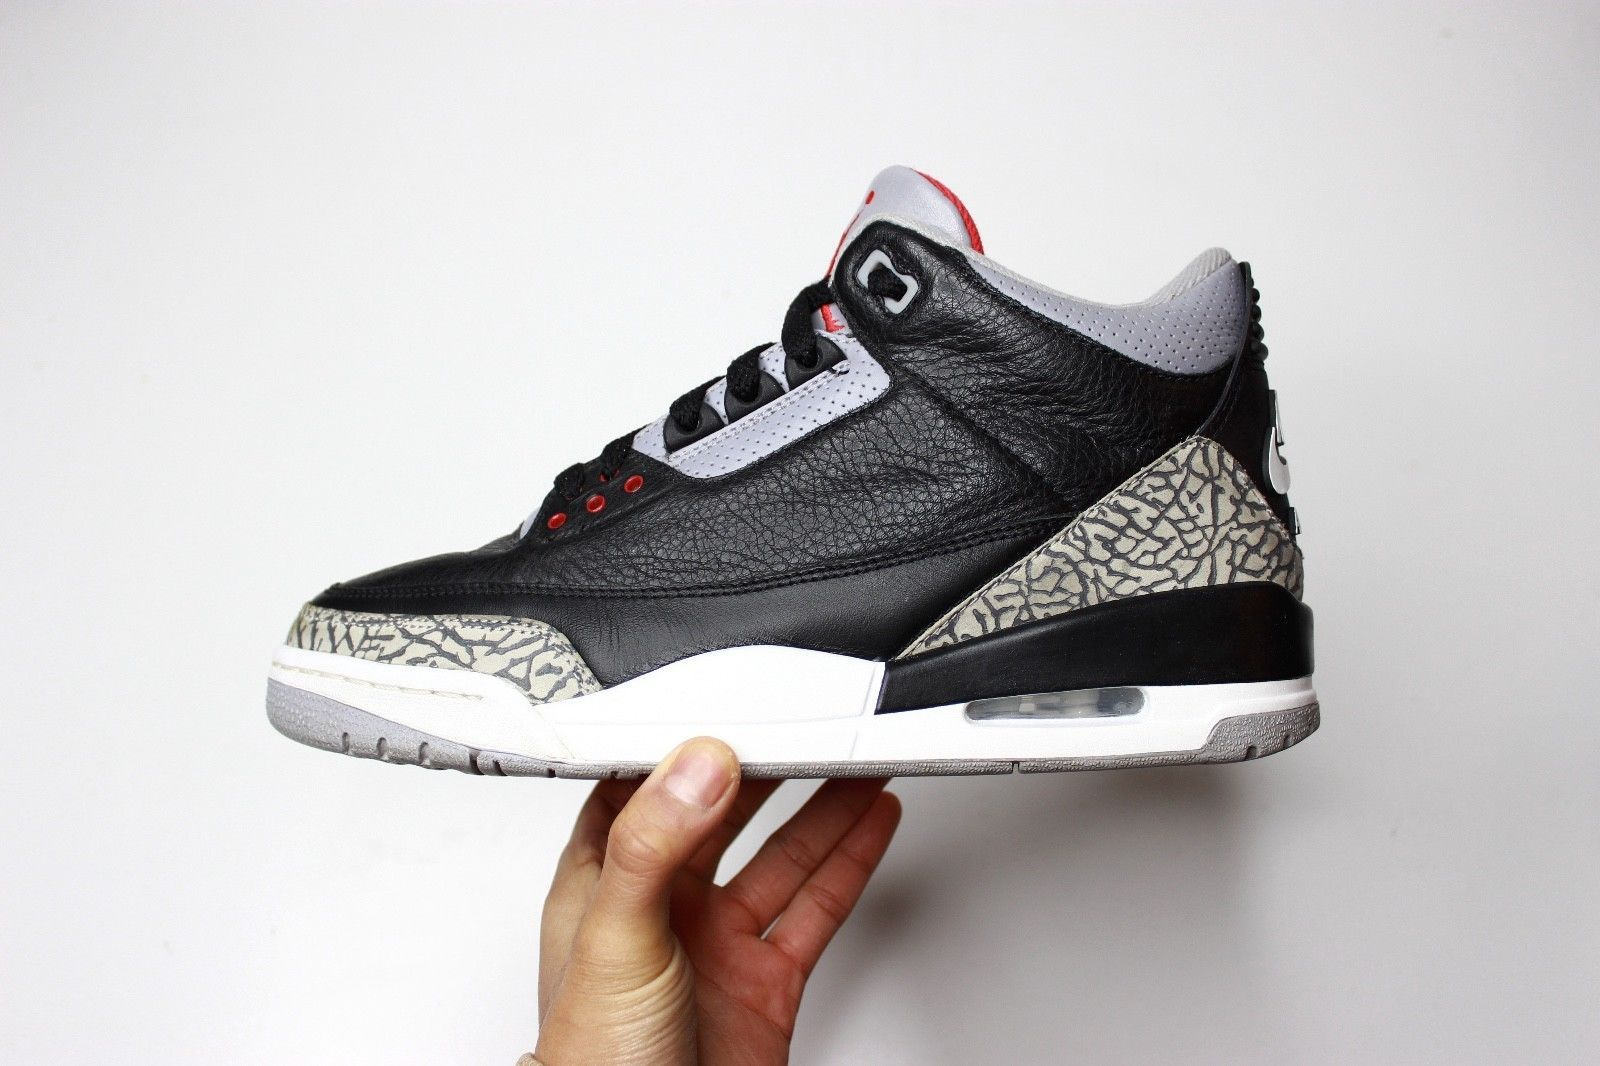 2001 Sample Nike Air Jordan 3 Black Cement sz 9 | III IV V VI Retro